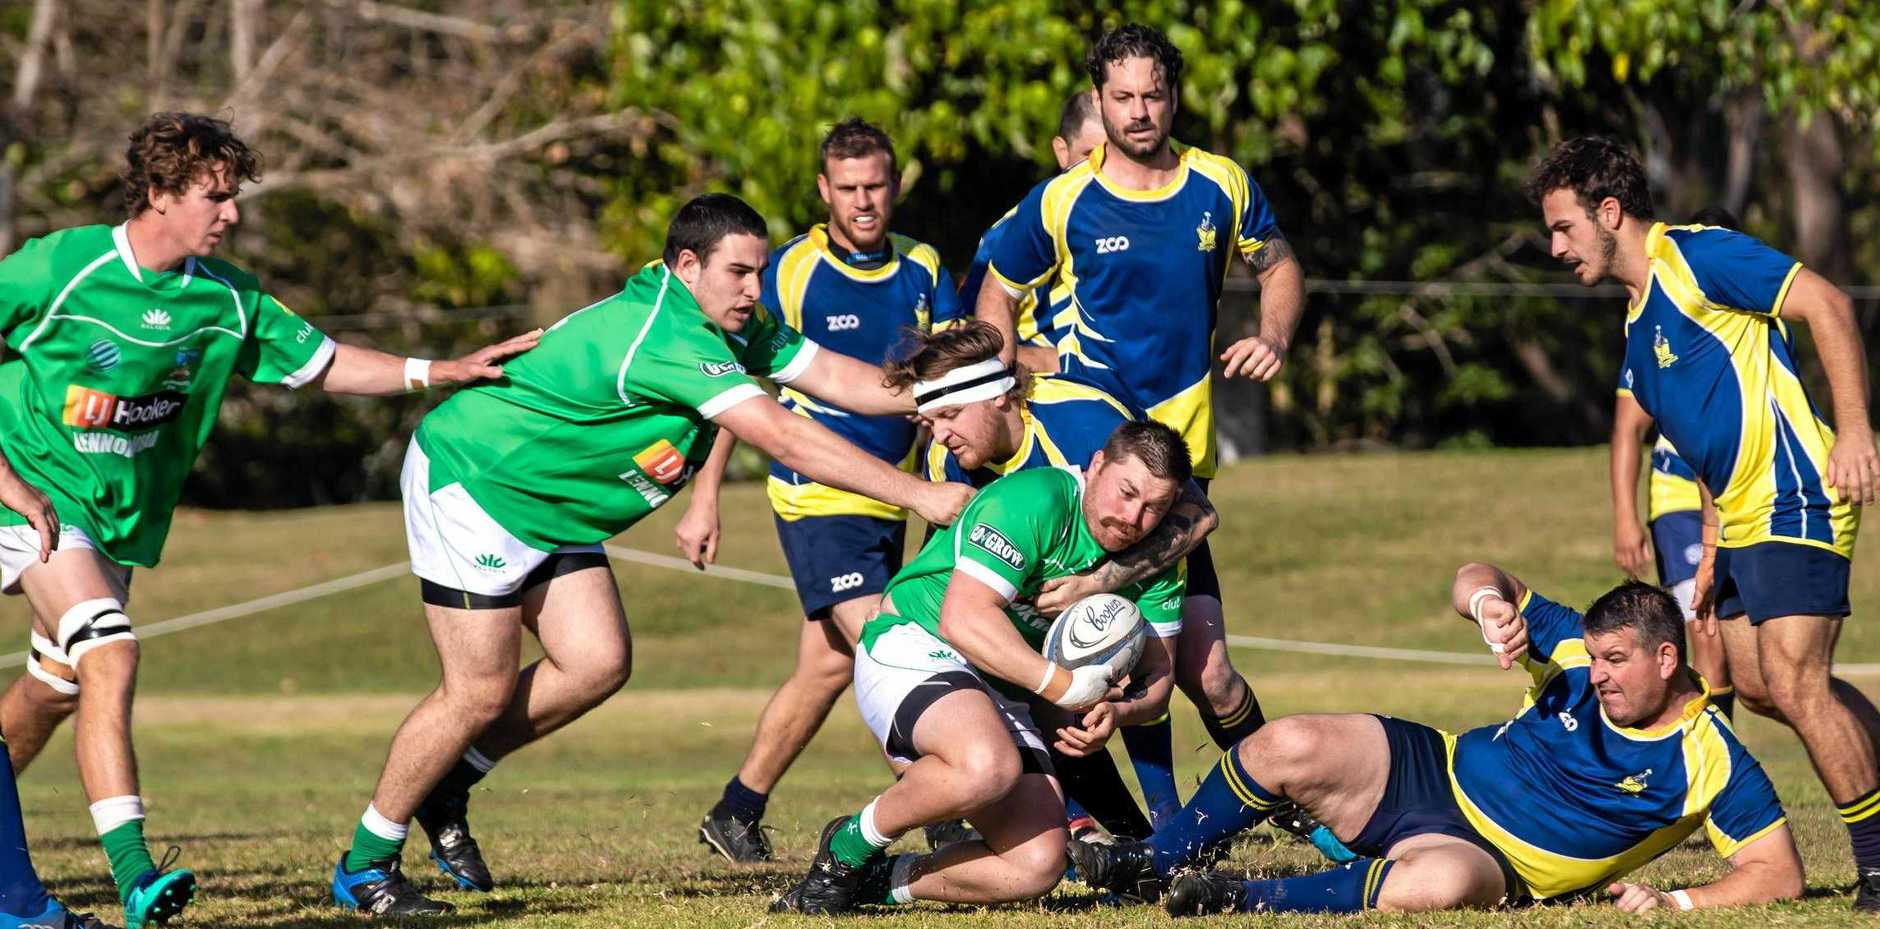 Lennox Head flanker Sean Watkins was one of the Trojans best against Casuarina in the FNC rugby minor semi-final.